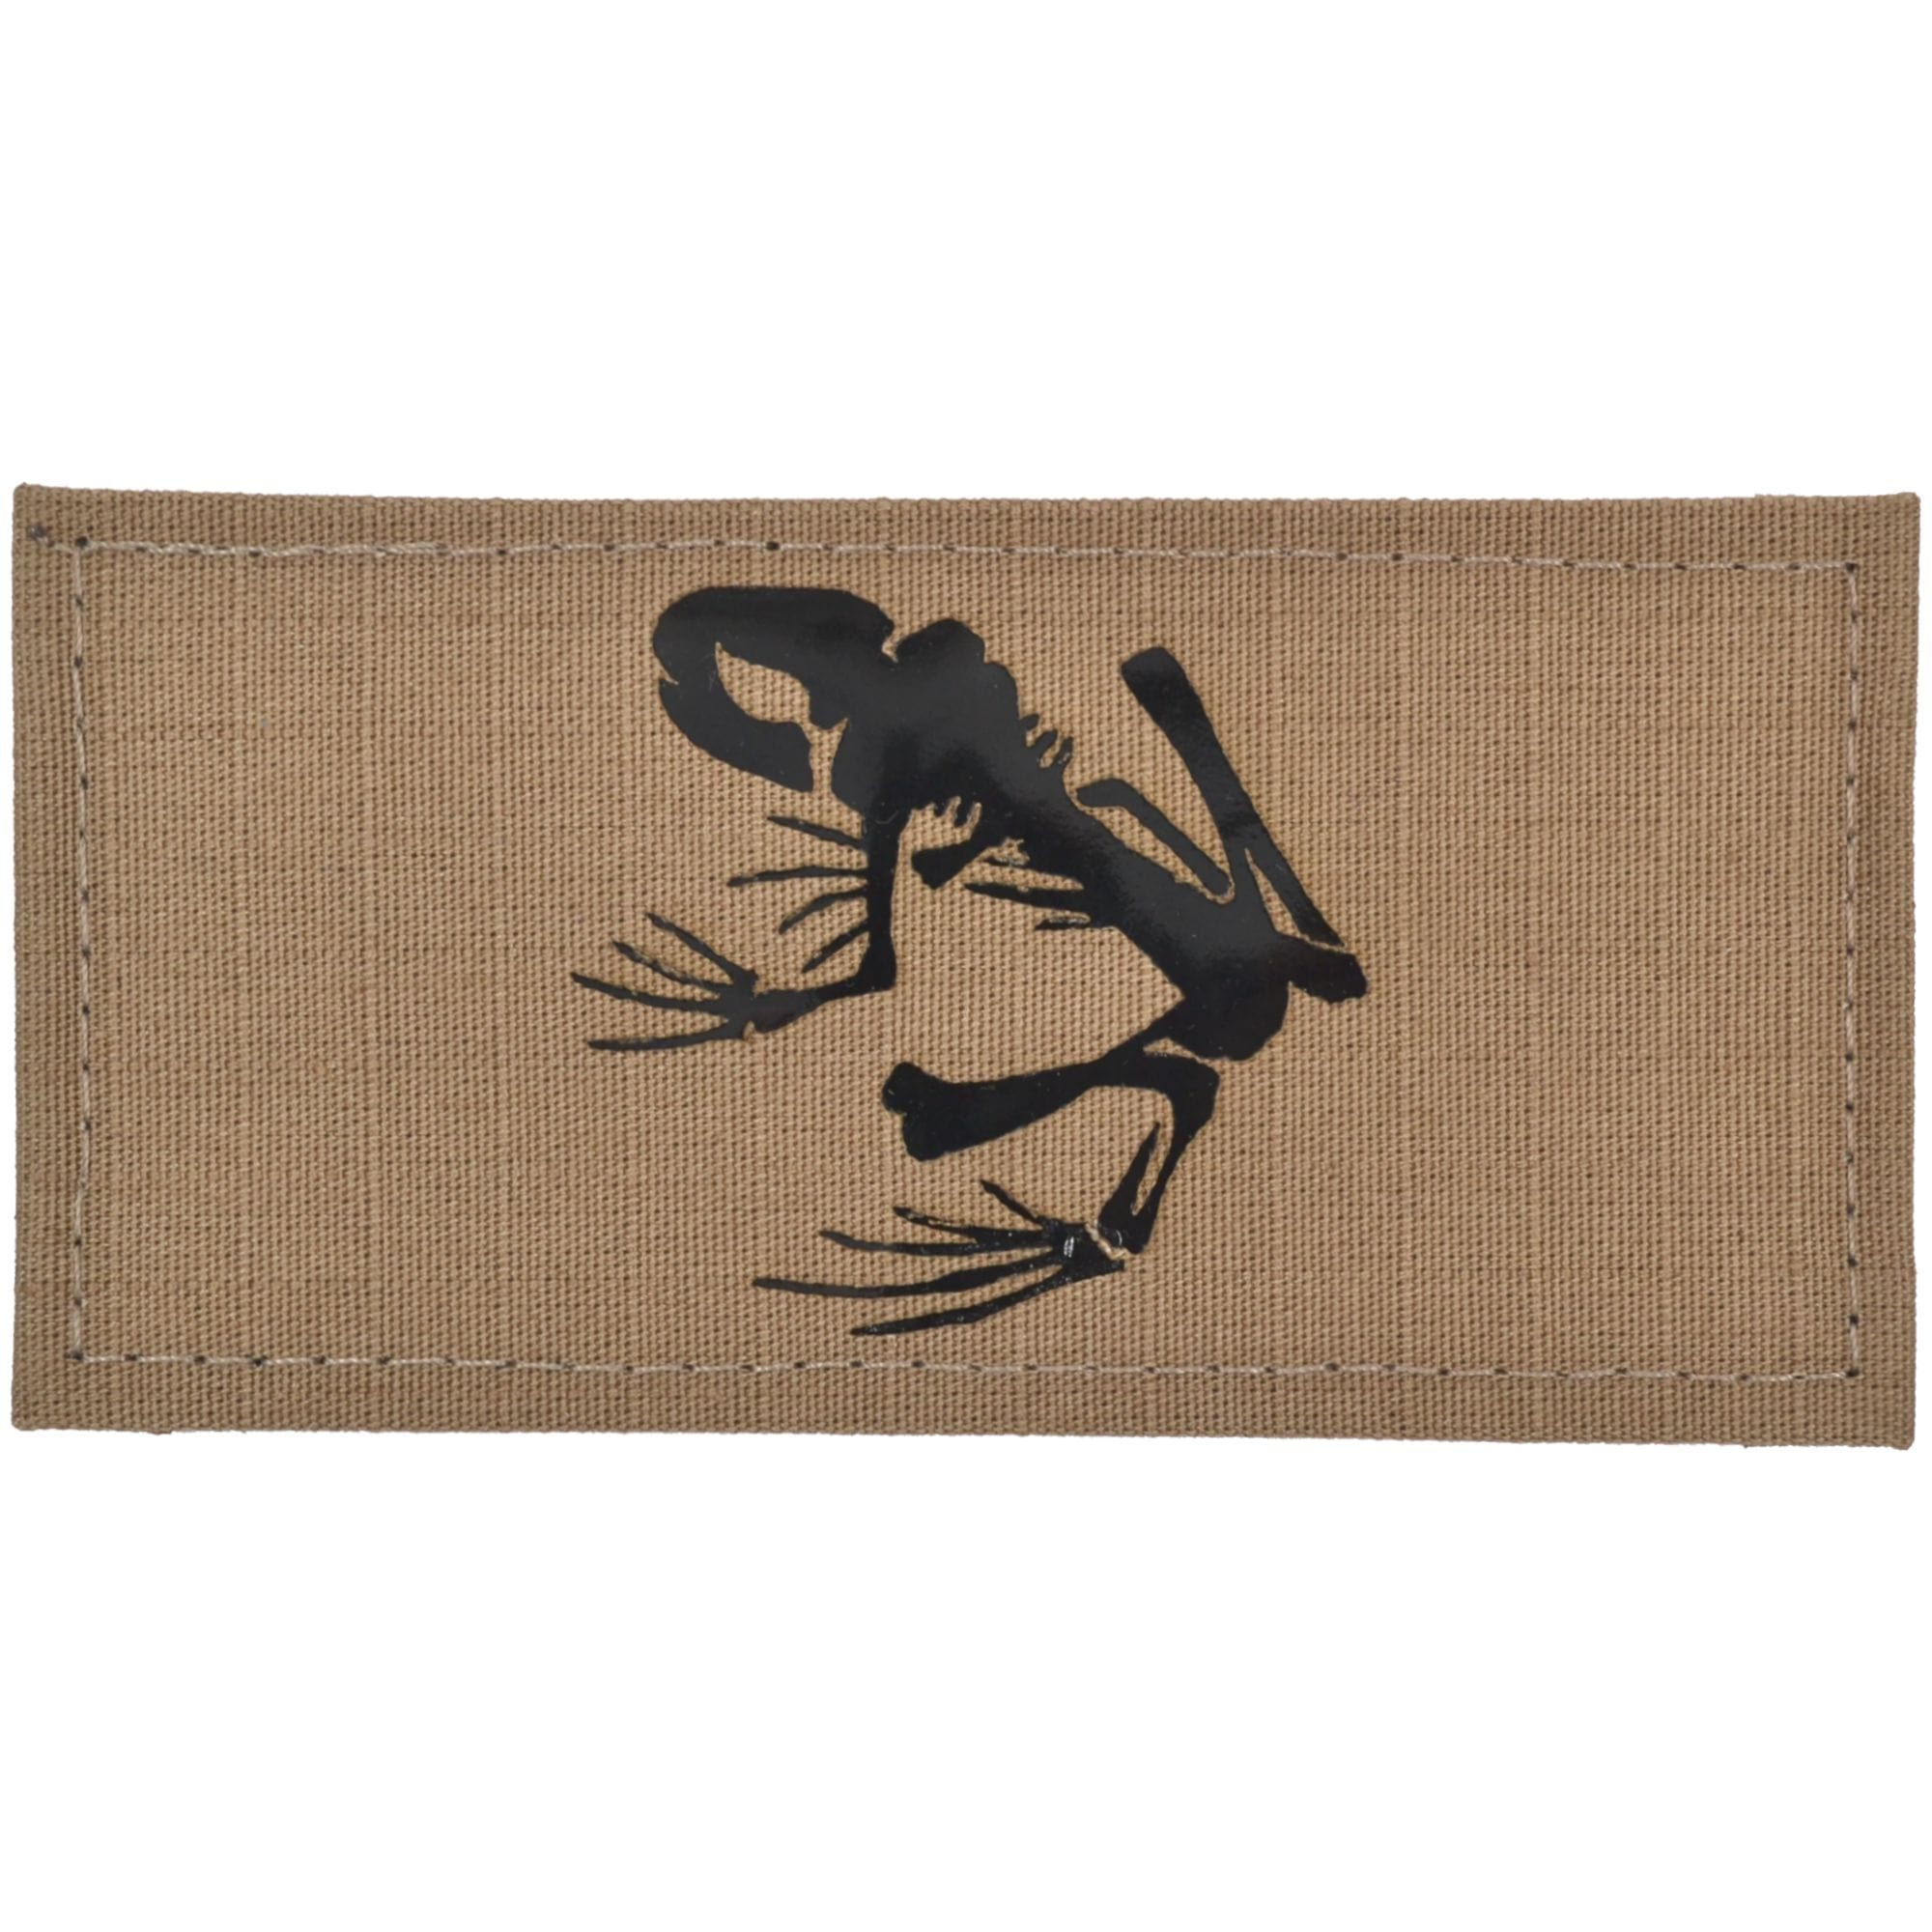 Navy Seal Frog Laser Cut Graphic - 2x4 CORDURA®Patch